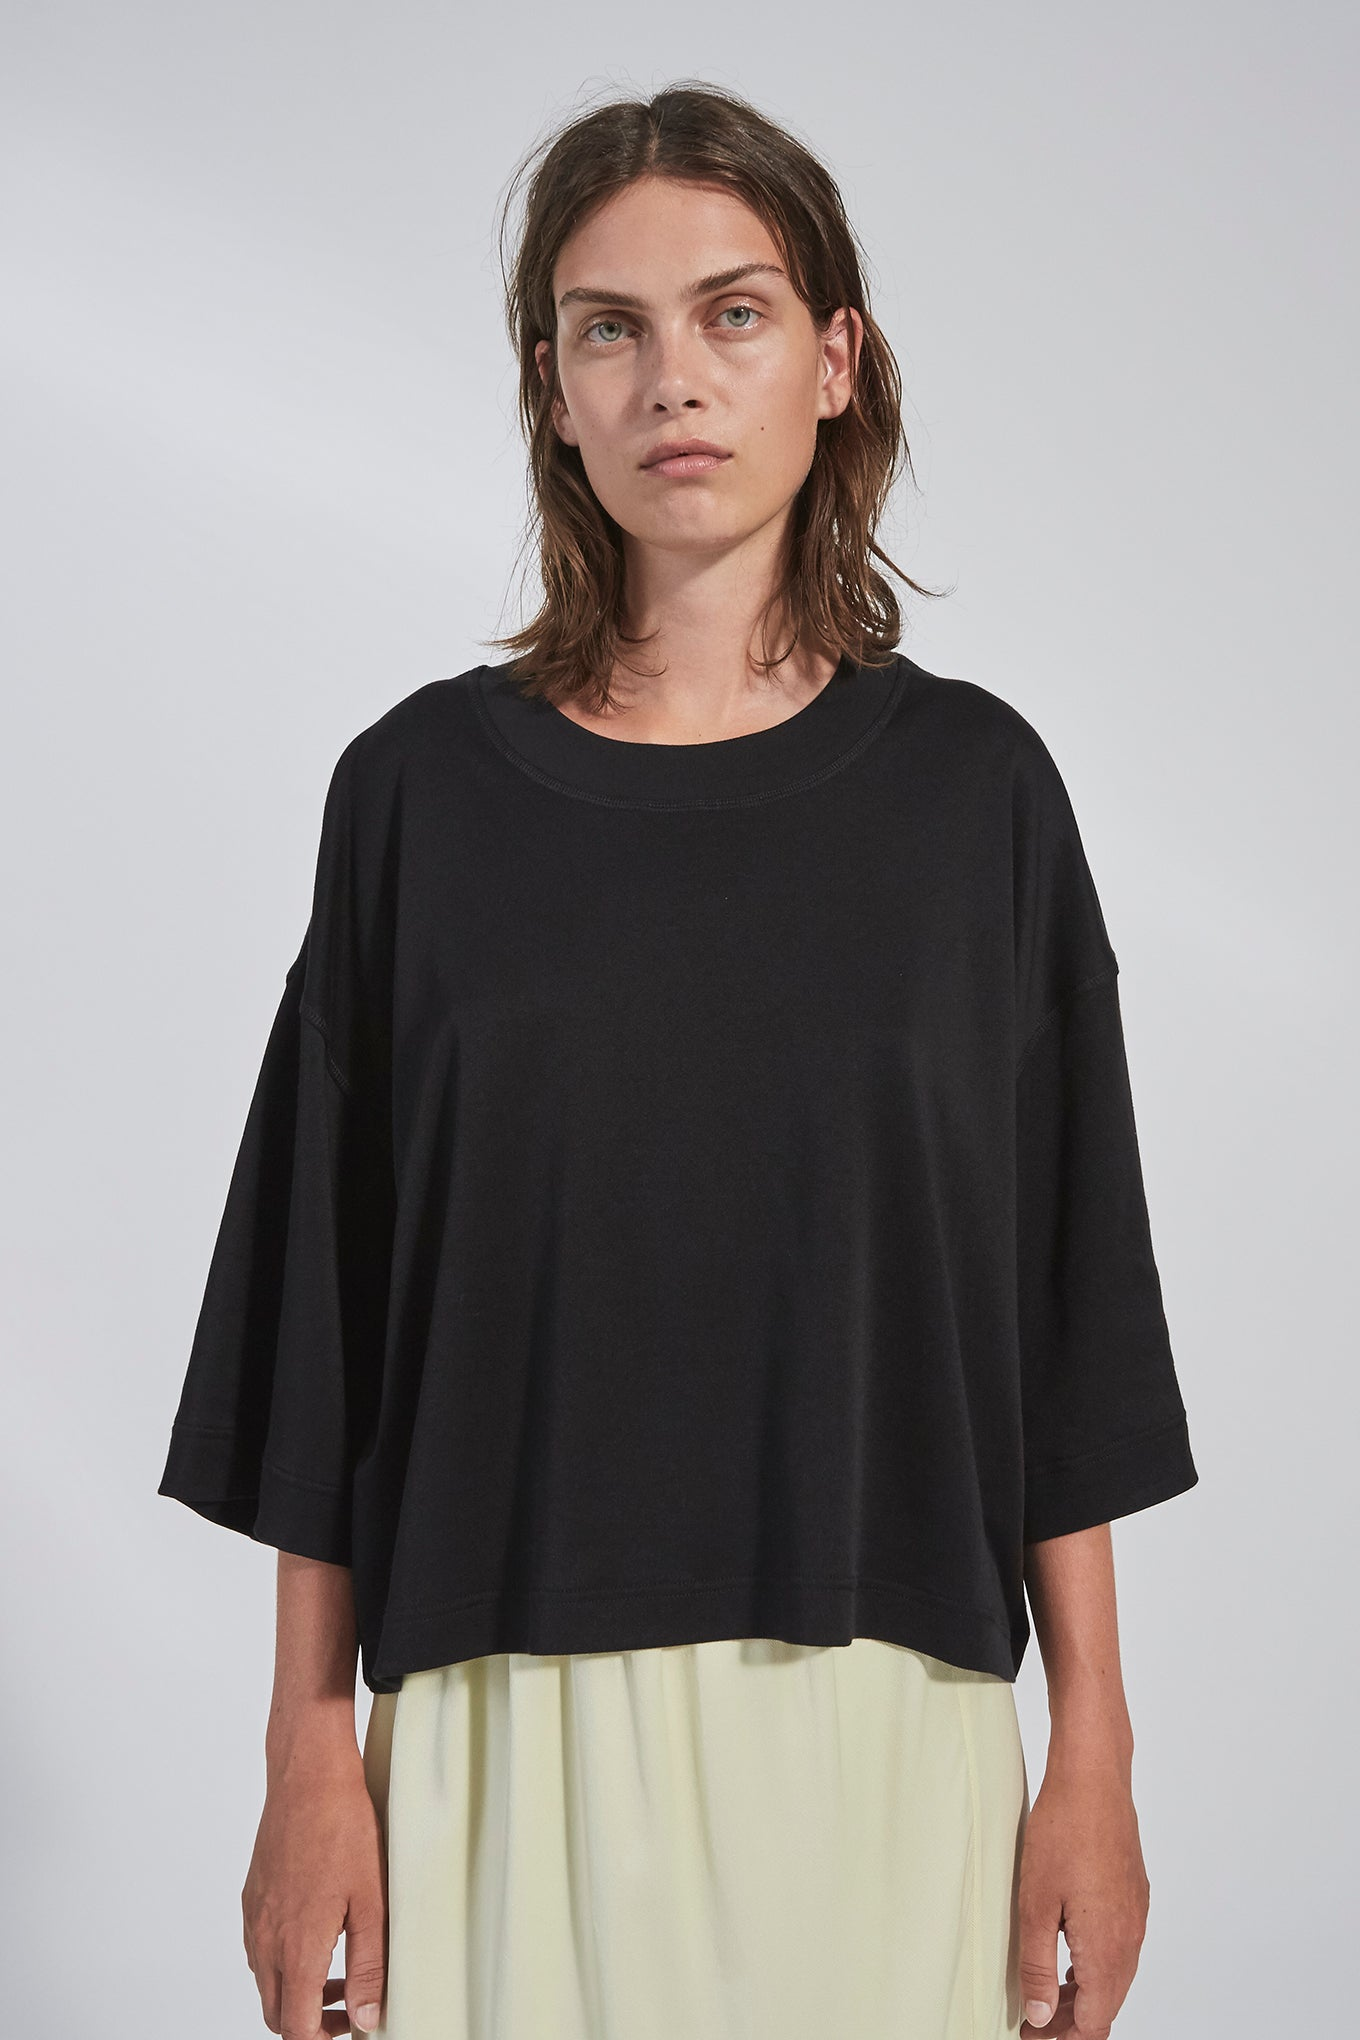 Olga Jersey Tee - Black - Silk/Cotton Jersey